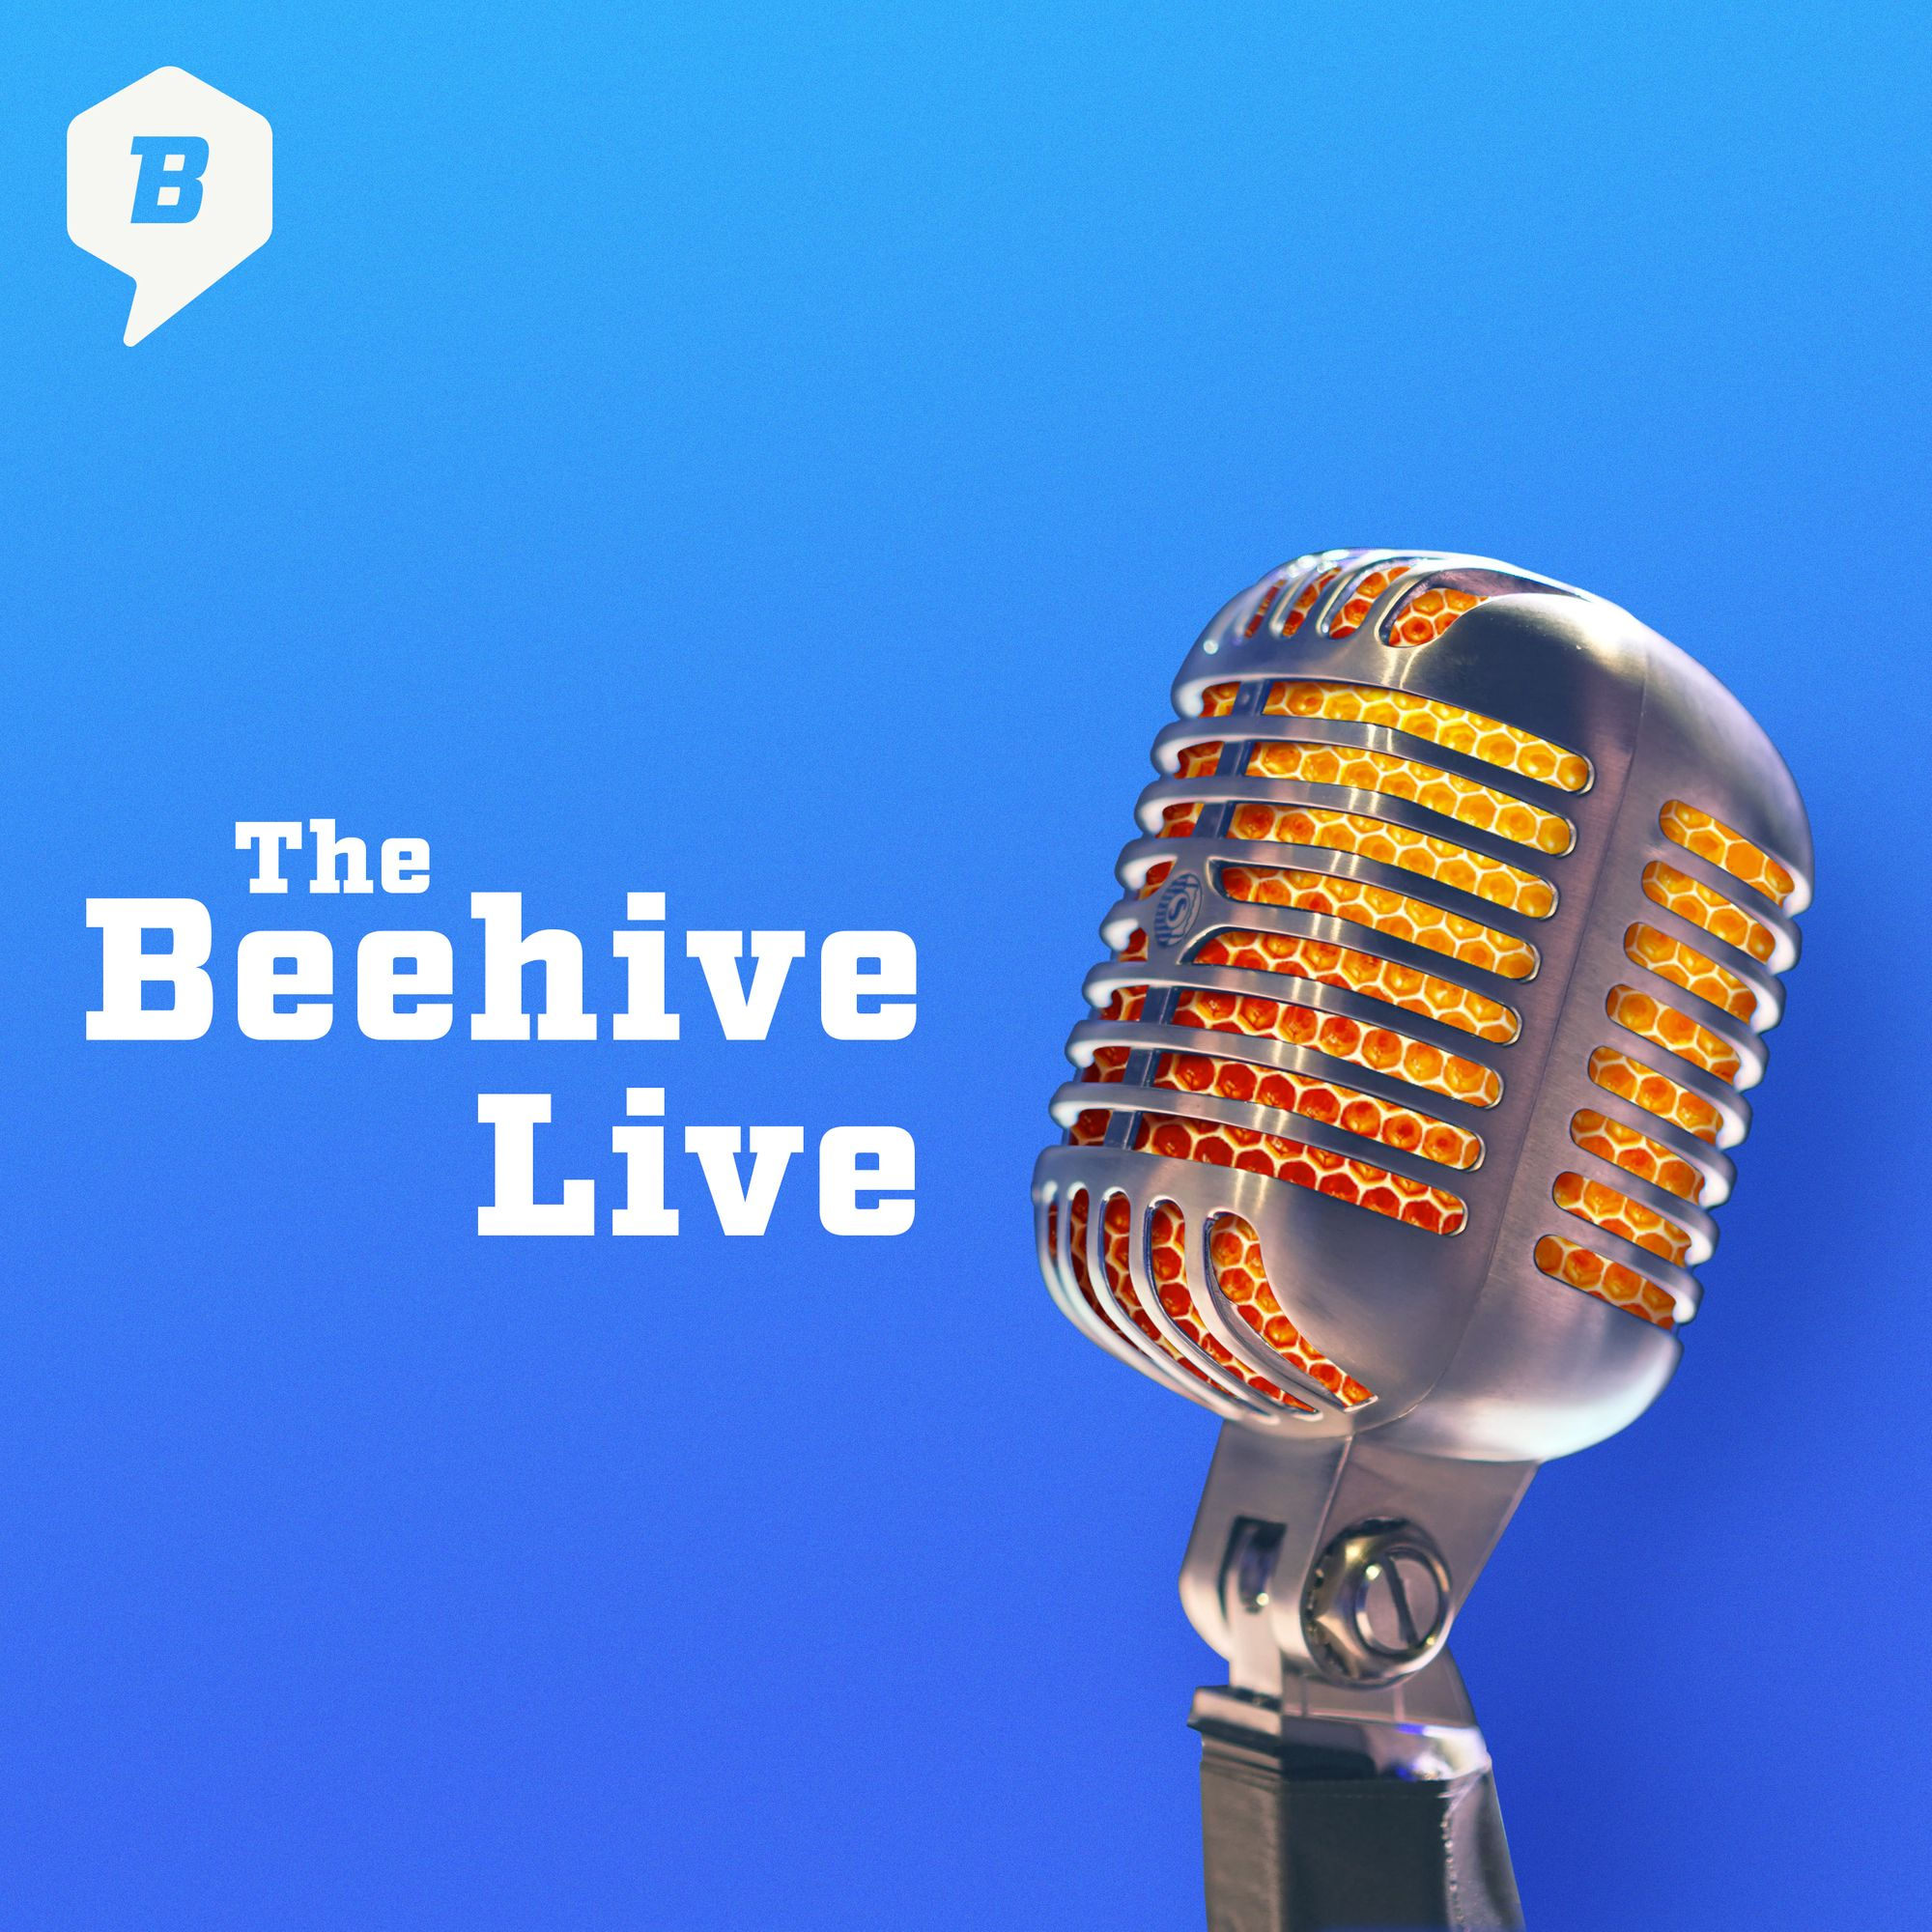 The Beehive Live